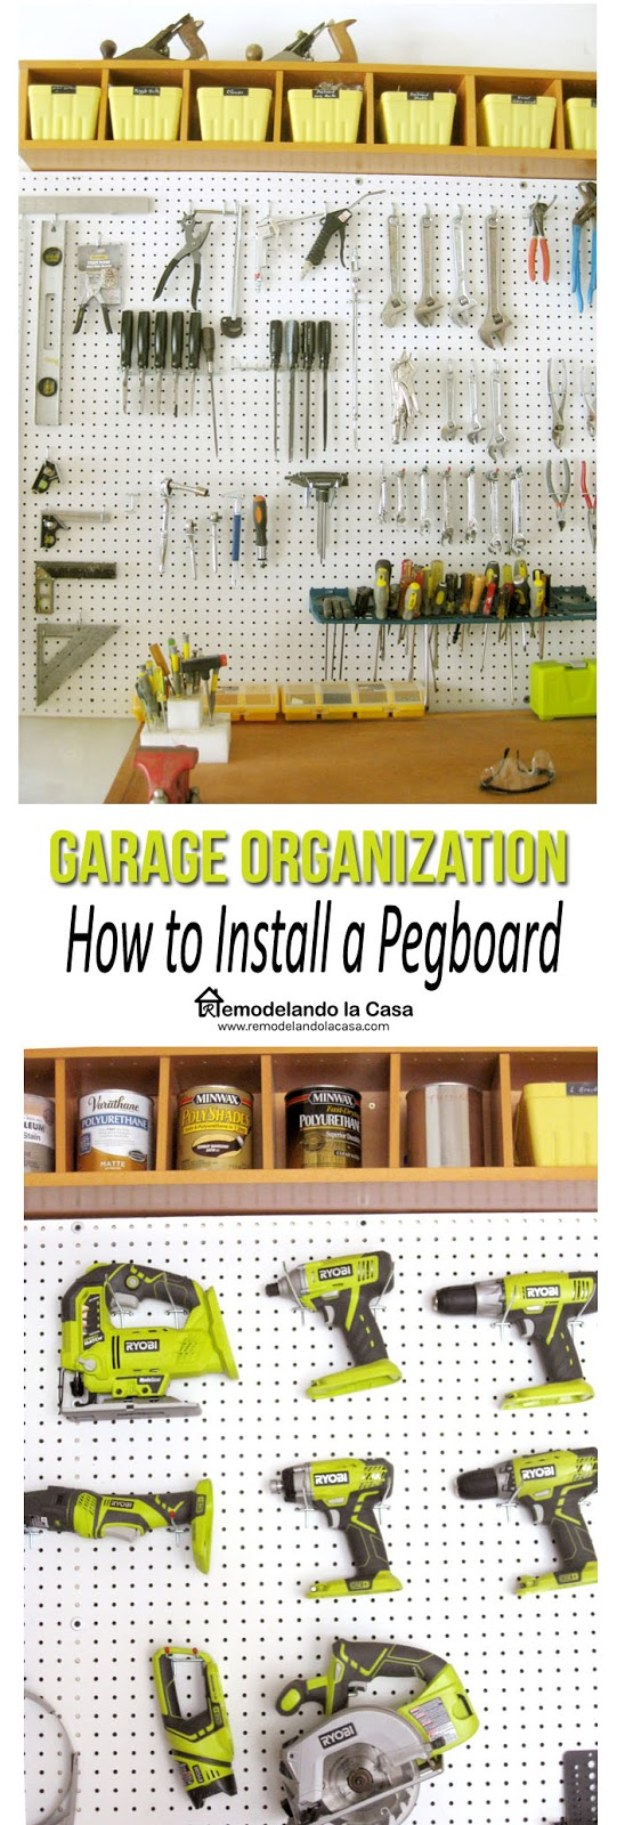 DIY Projects Your Garage Needs -Garage Pegboard Tutorial - Do It Yourself Garage Makeover Ideas Include Storage, Organization, Shelves, and Project Plans for Cool New Garage Decor #diy #garage #homeimprovement